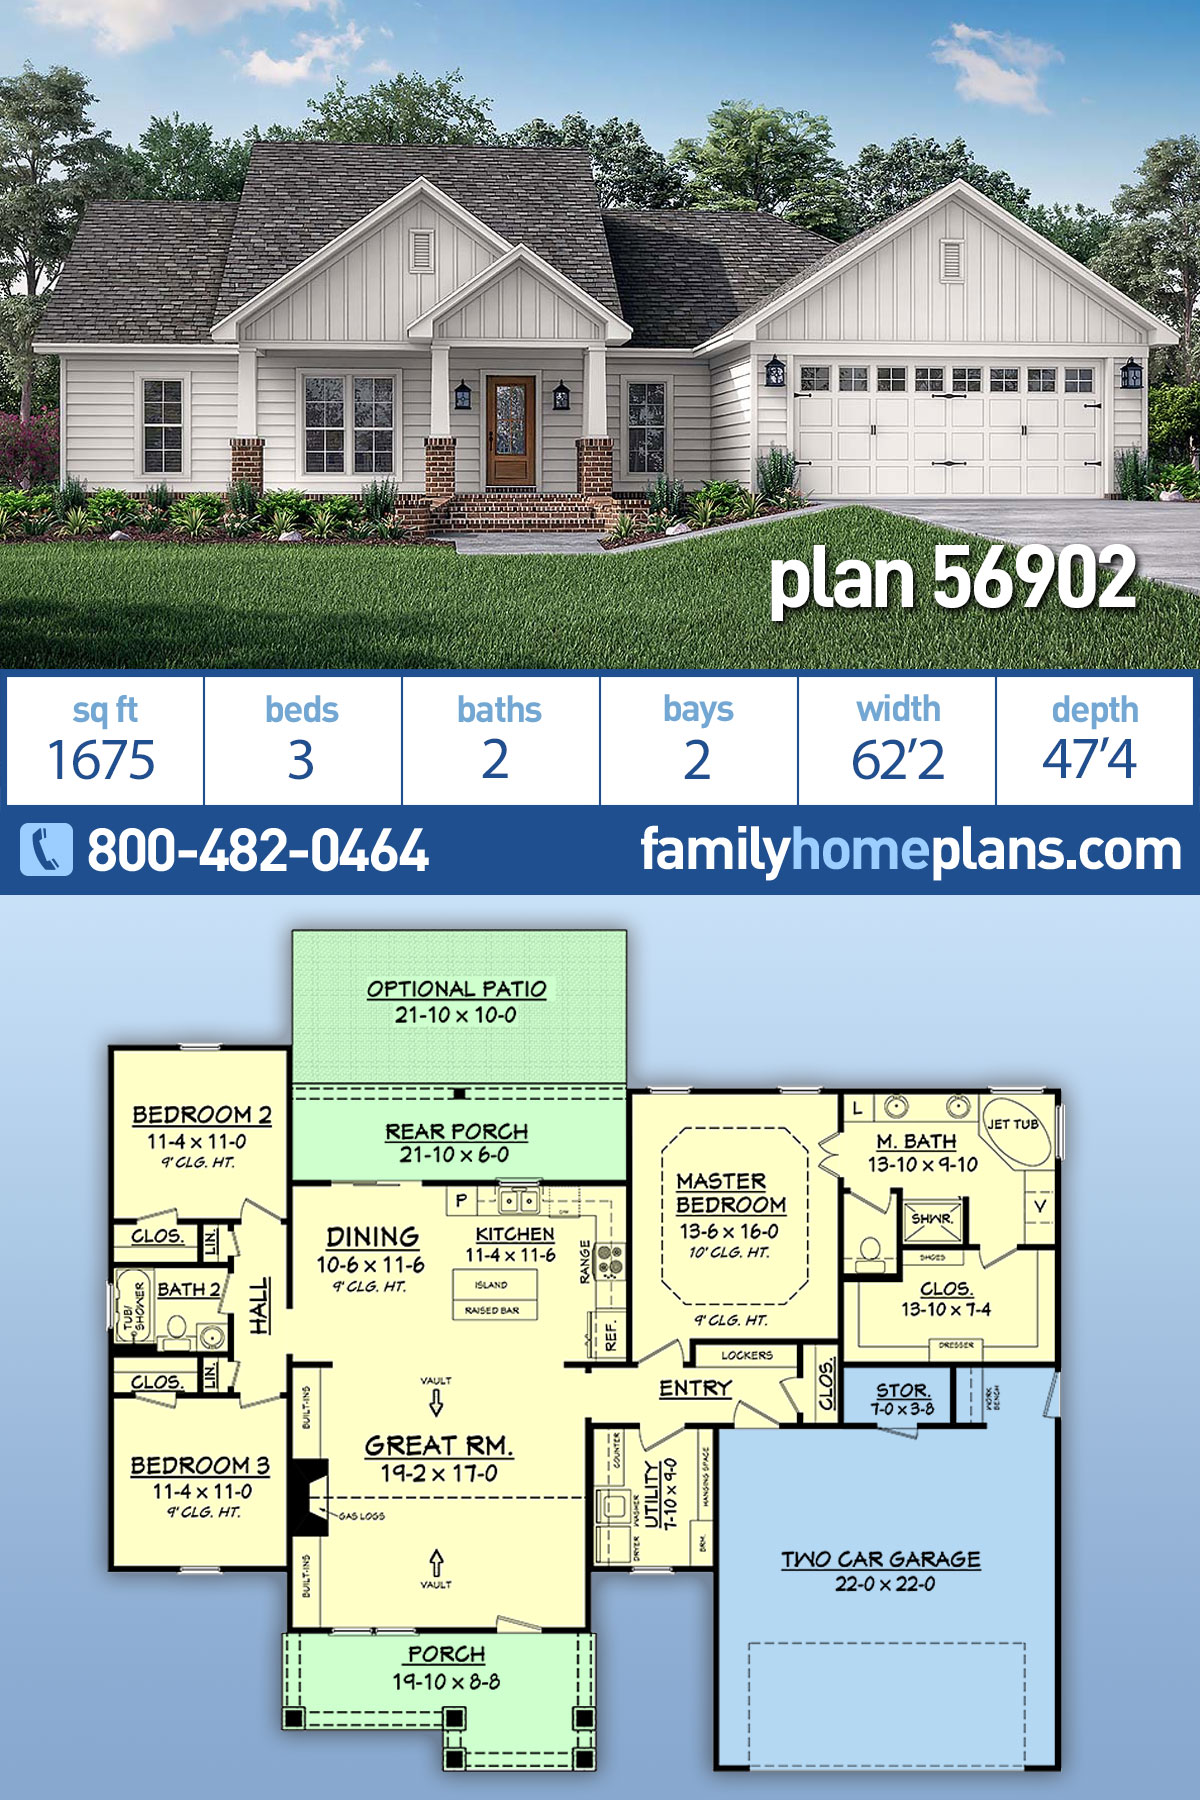 Cottage, Country, Craftsman, Traditional House Plan 56902 with 3 Beds, 2 Baths, 2 Car Garage